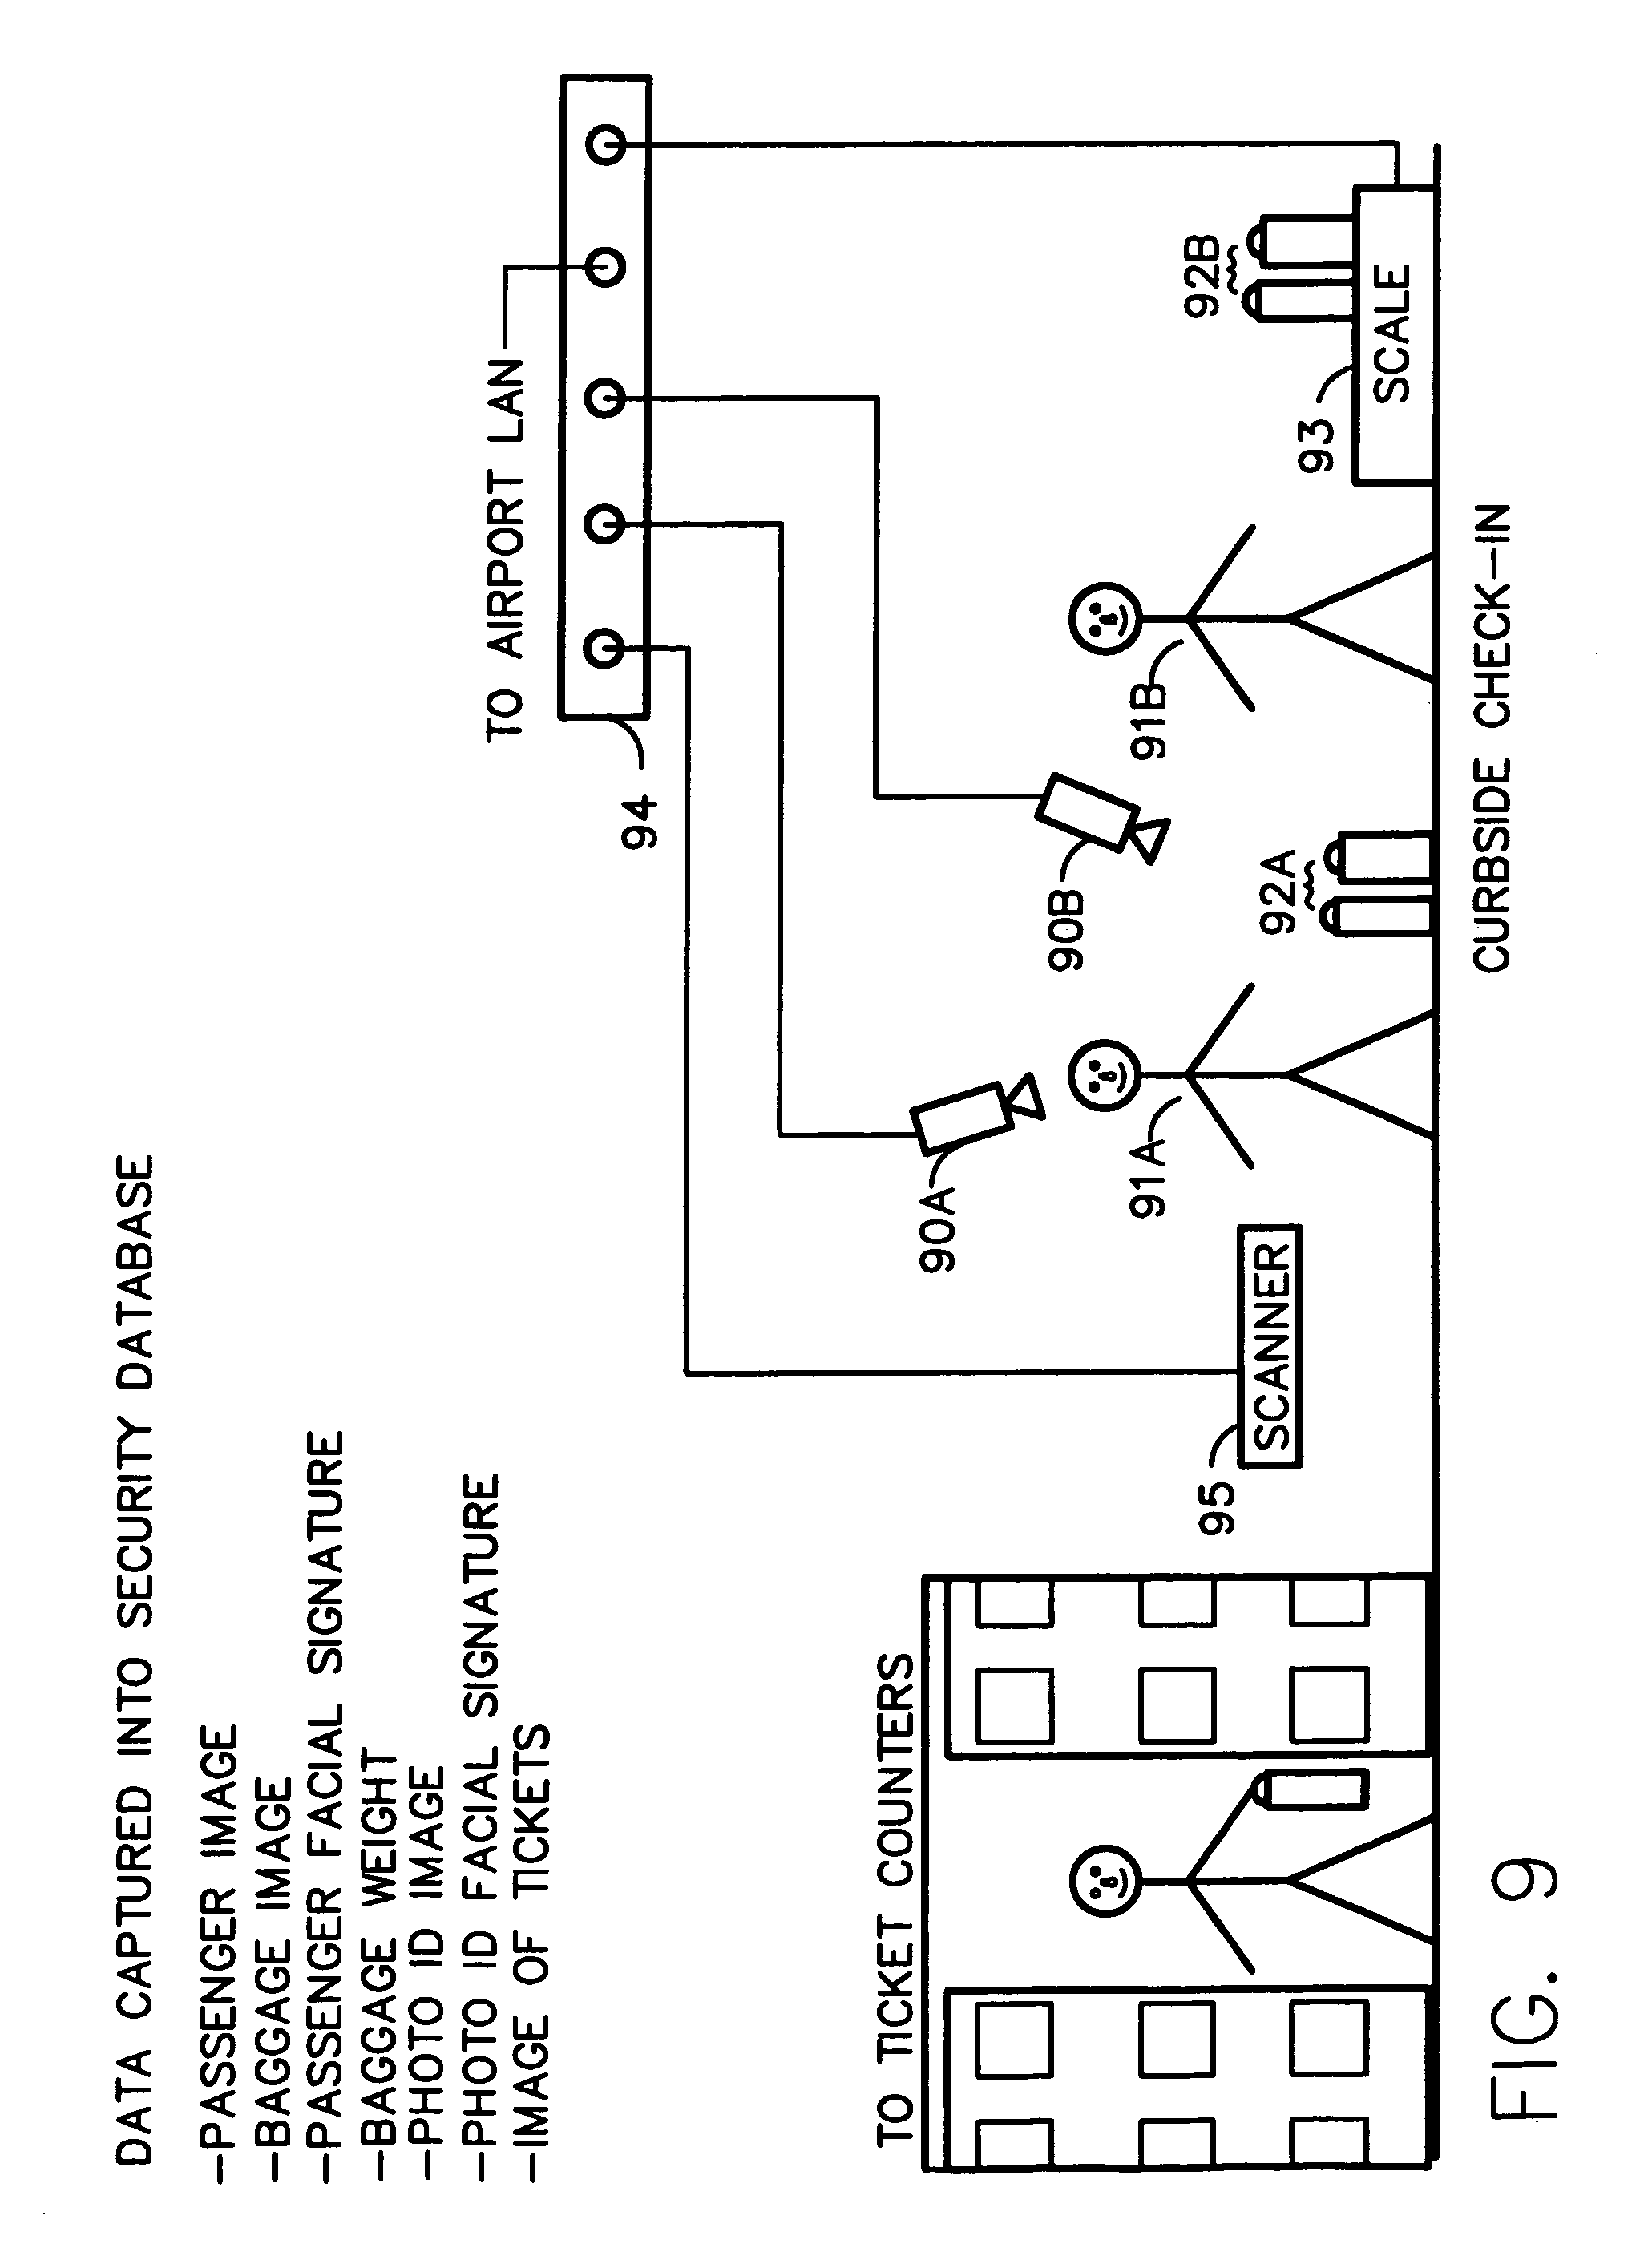 Patent Us 7634662 B2 Luggage Security Alarm Schematic 0 Petitions